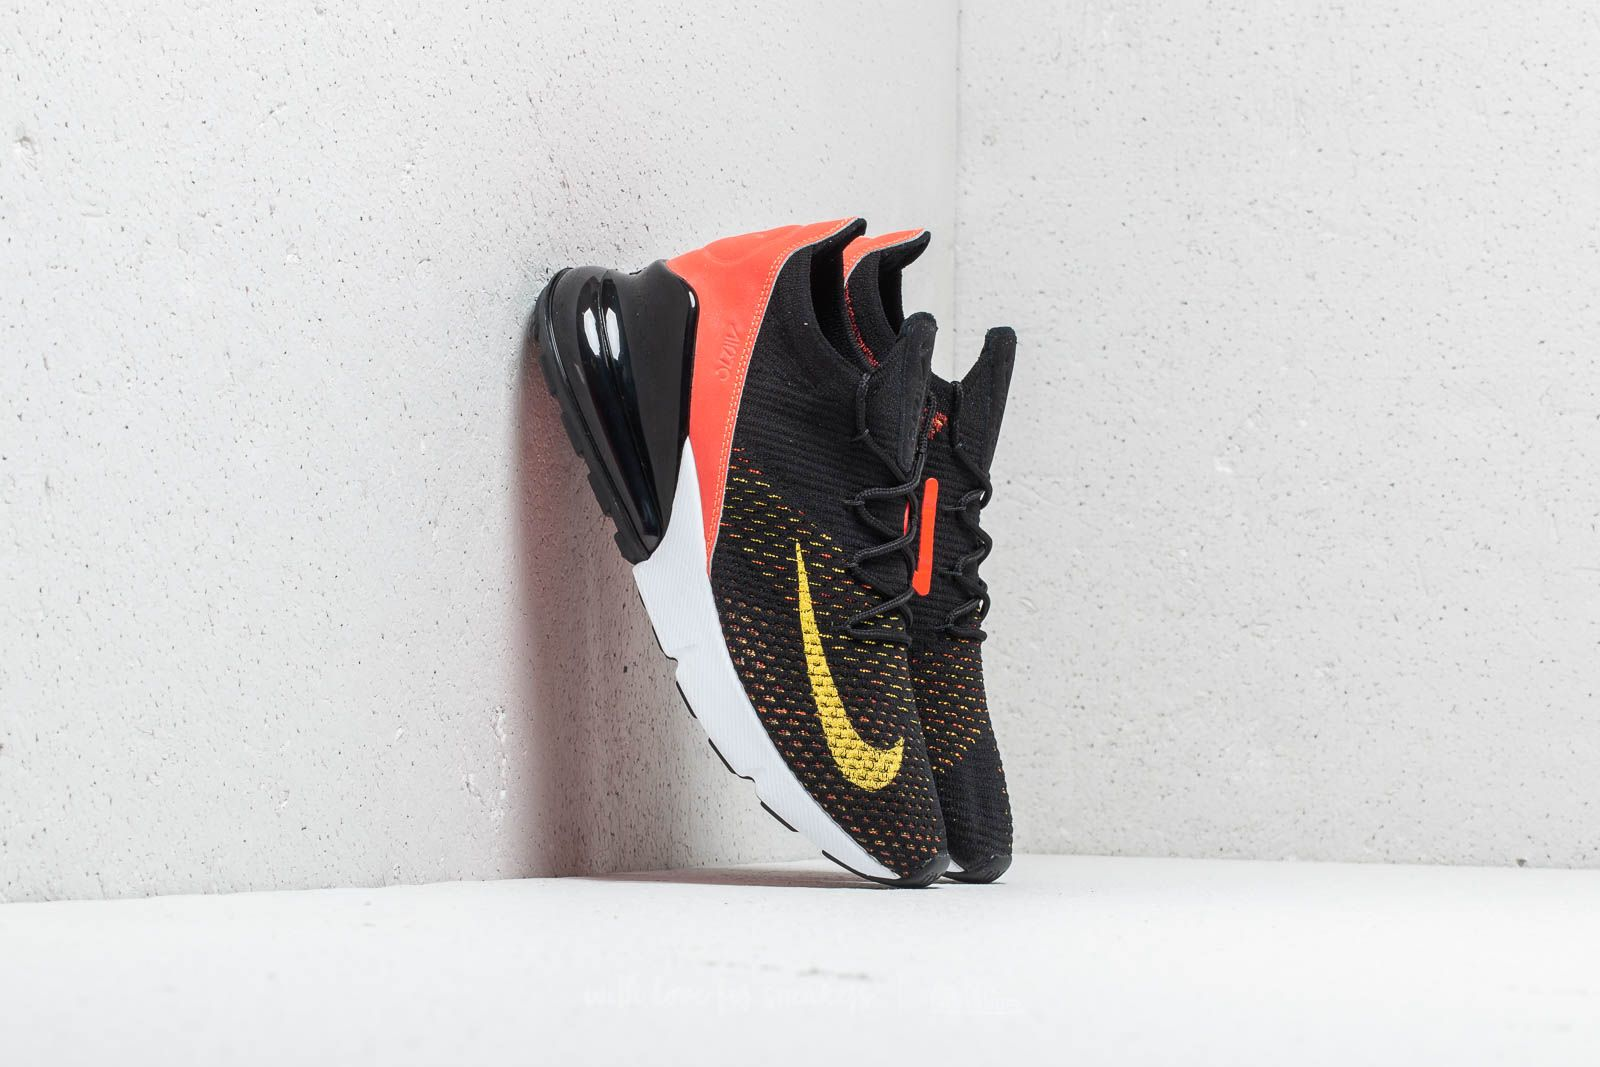 official photos 6da8c b67c9 Nike W Air Max 270 Flyknit Black/ Yellow Strike | Footshop